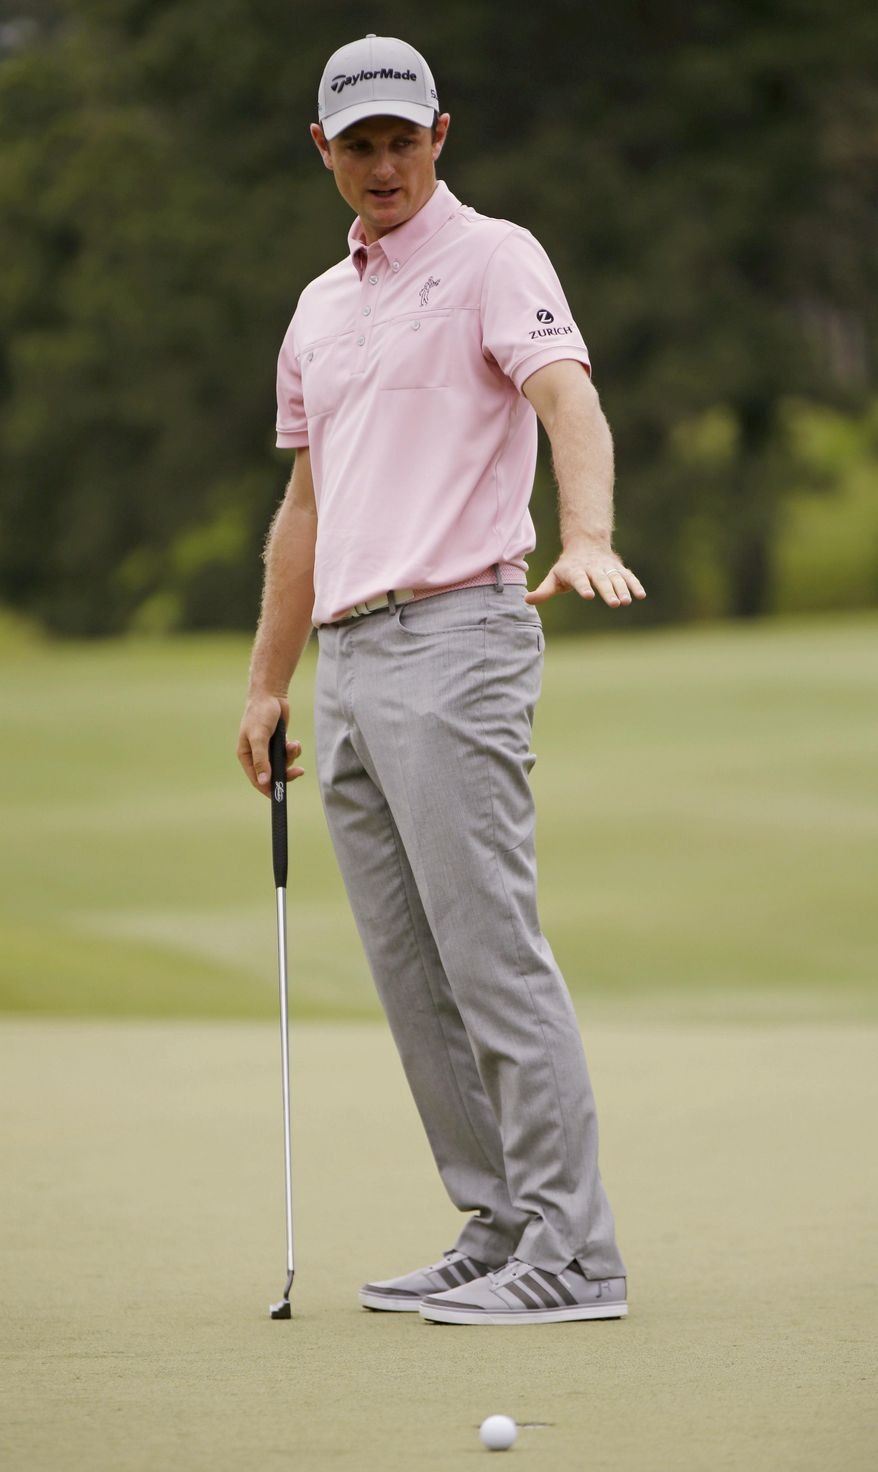 Justin Rose of England, gestures after his ball misses the 7th hole cup during the final round of The Players championship golf tournament at TPC Sawgrass, Sunday, May 11, 2014 in Ponte Vedra Beach, Fla. (AP Photo/Gerald Herbert)